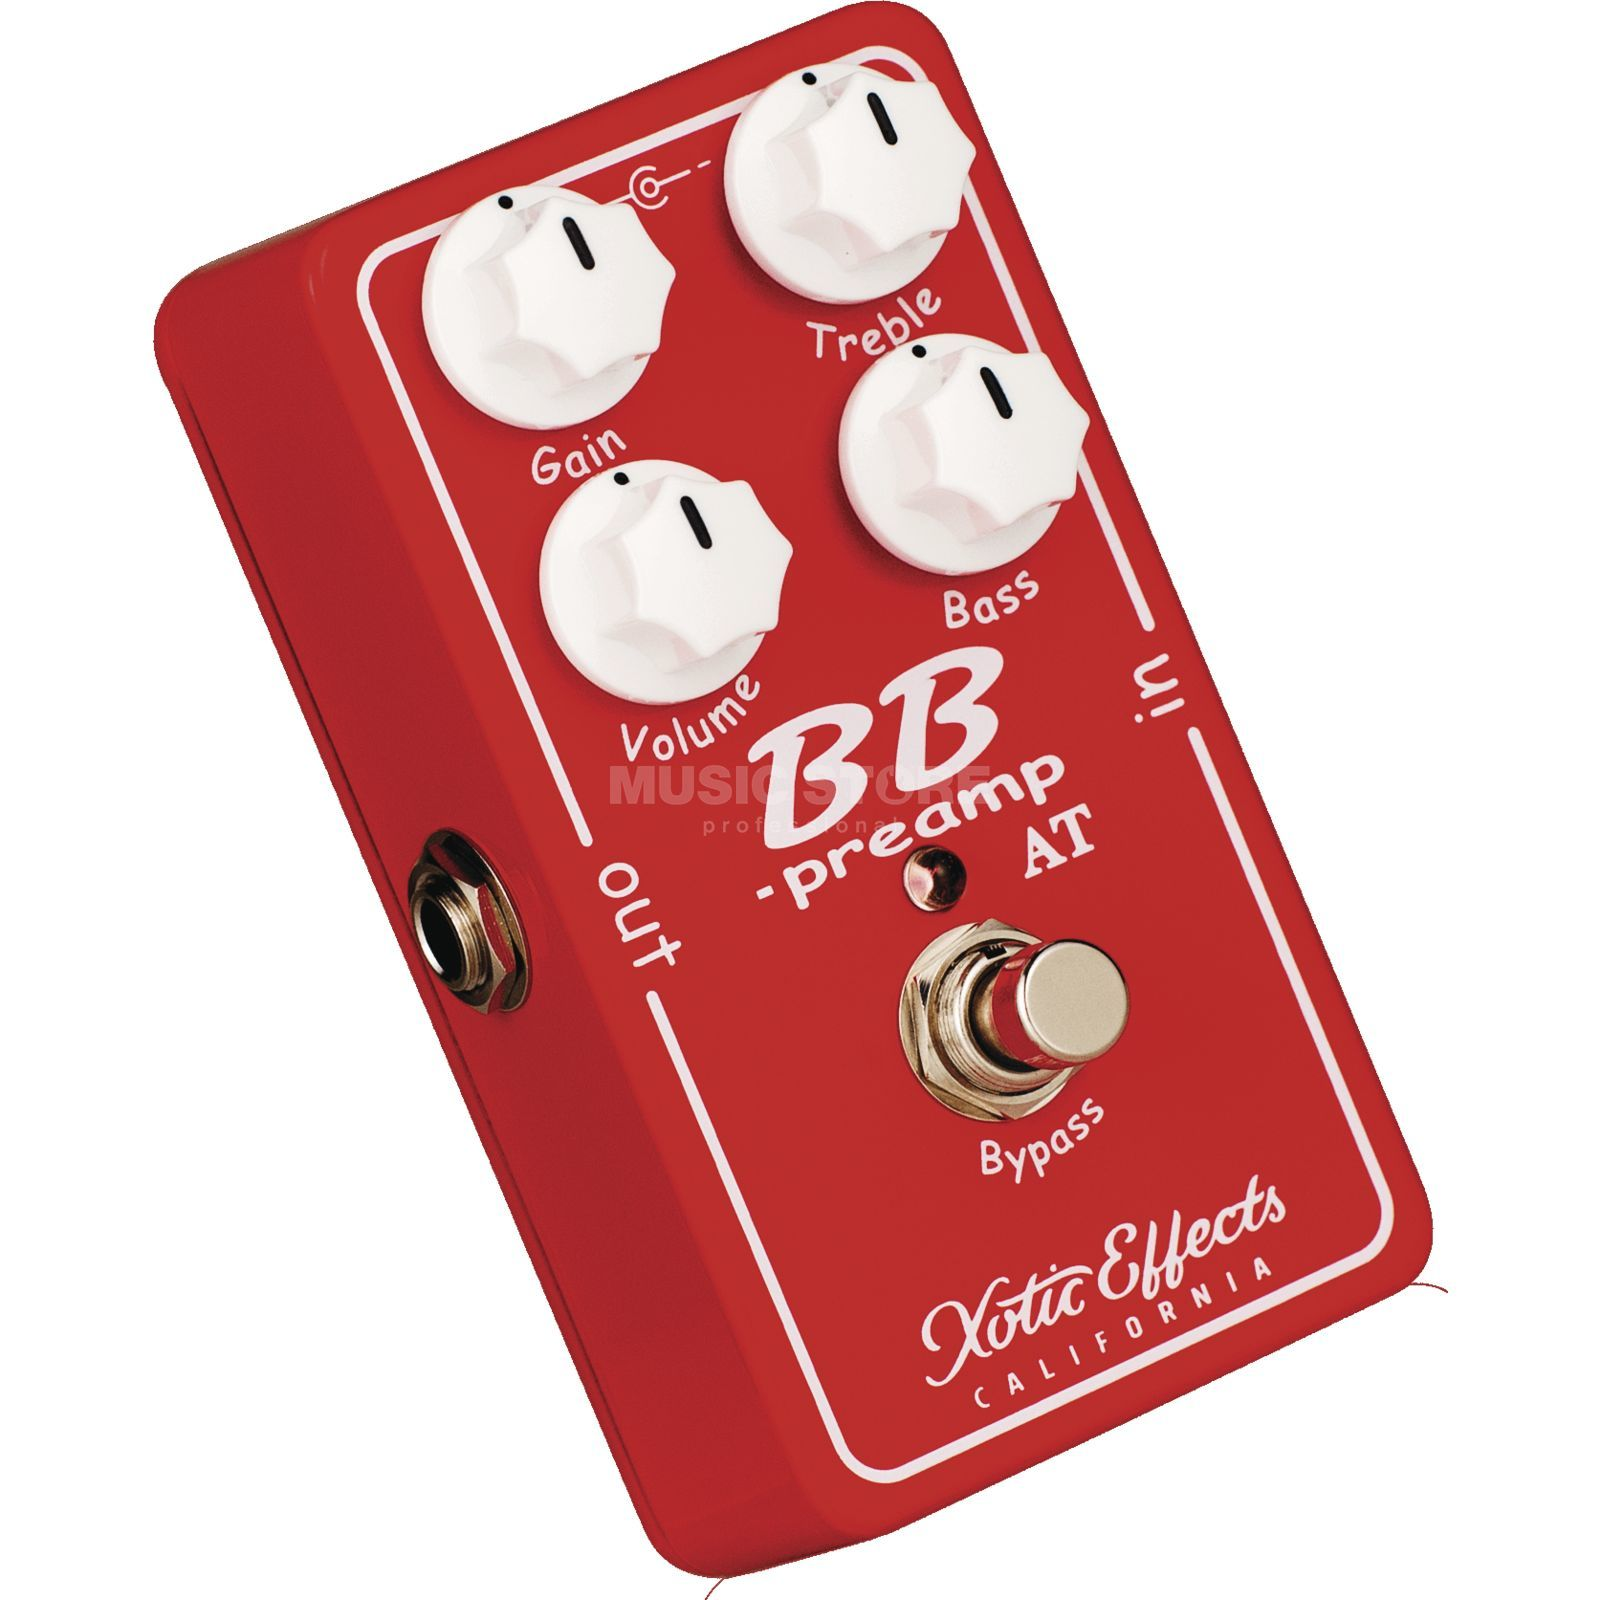 Xotic BB Preamp AT Product Image